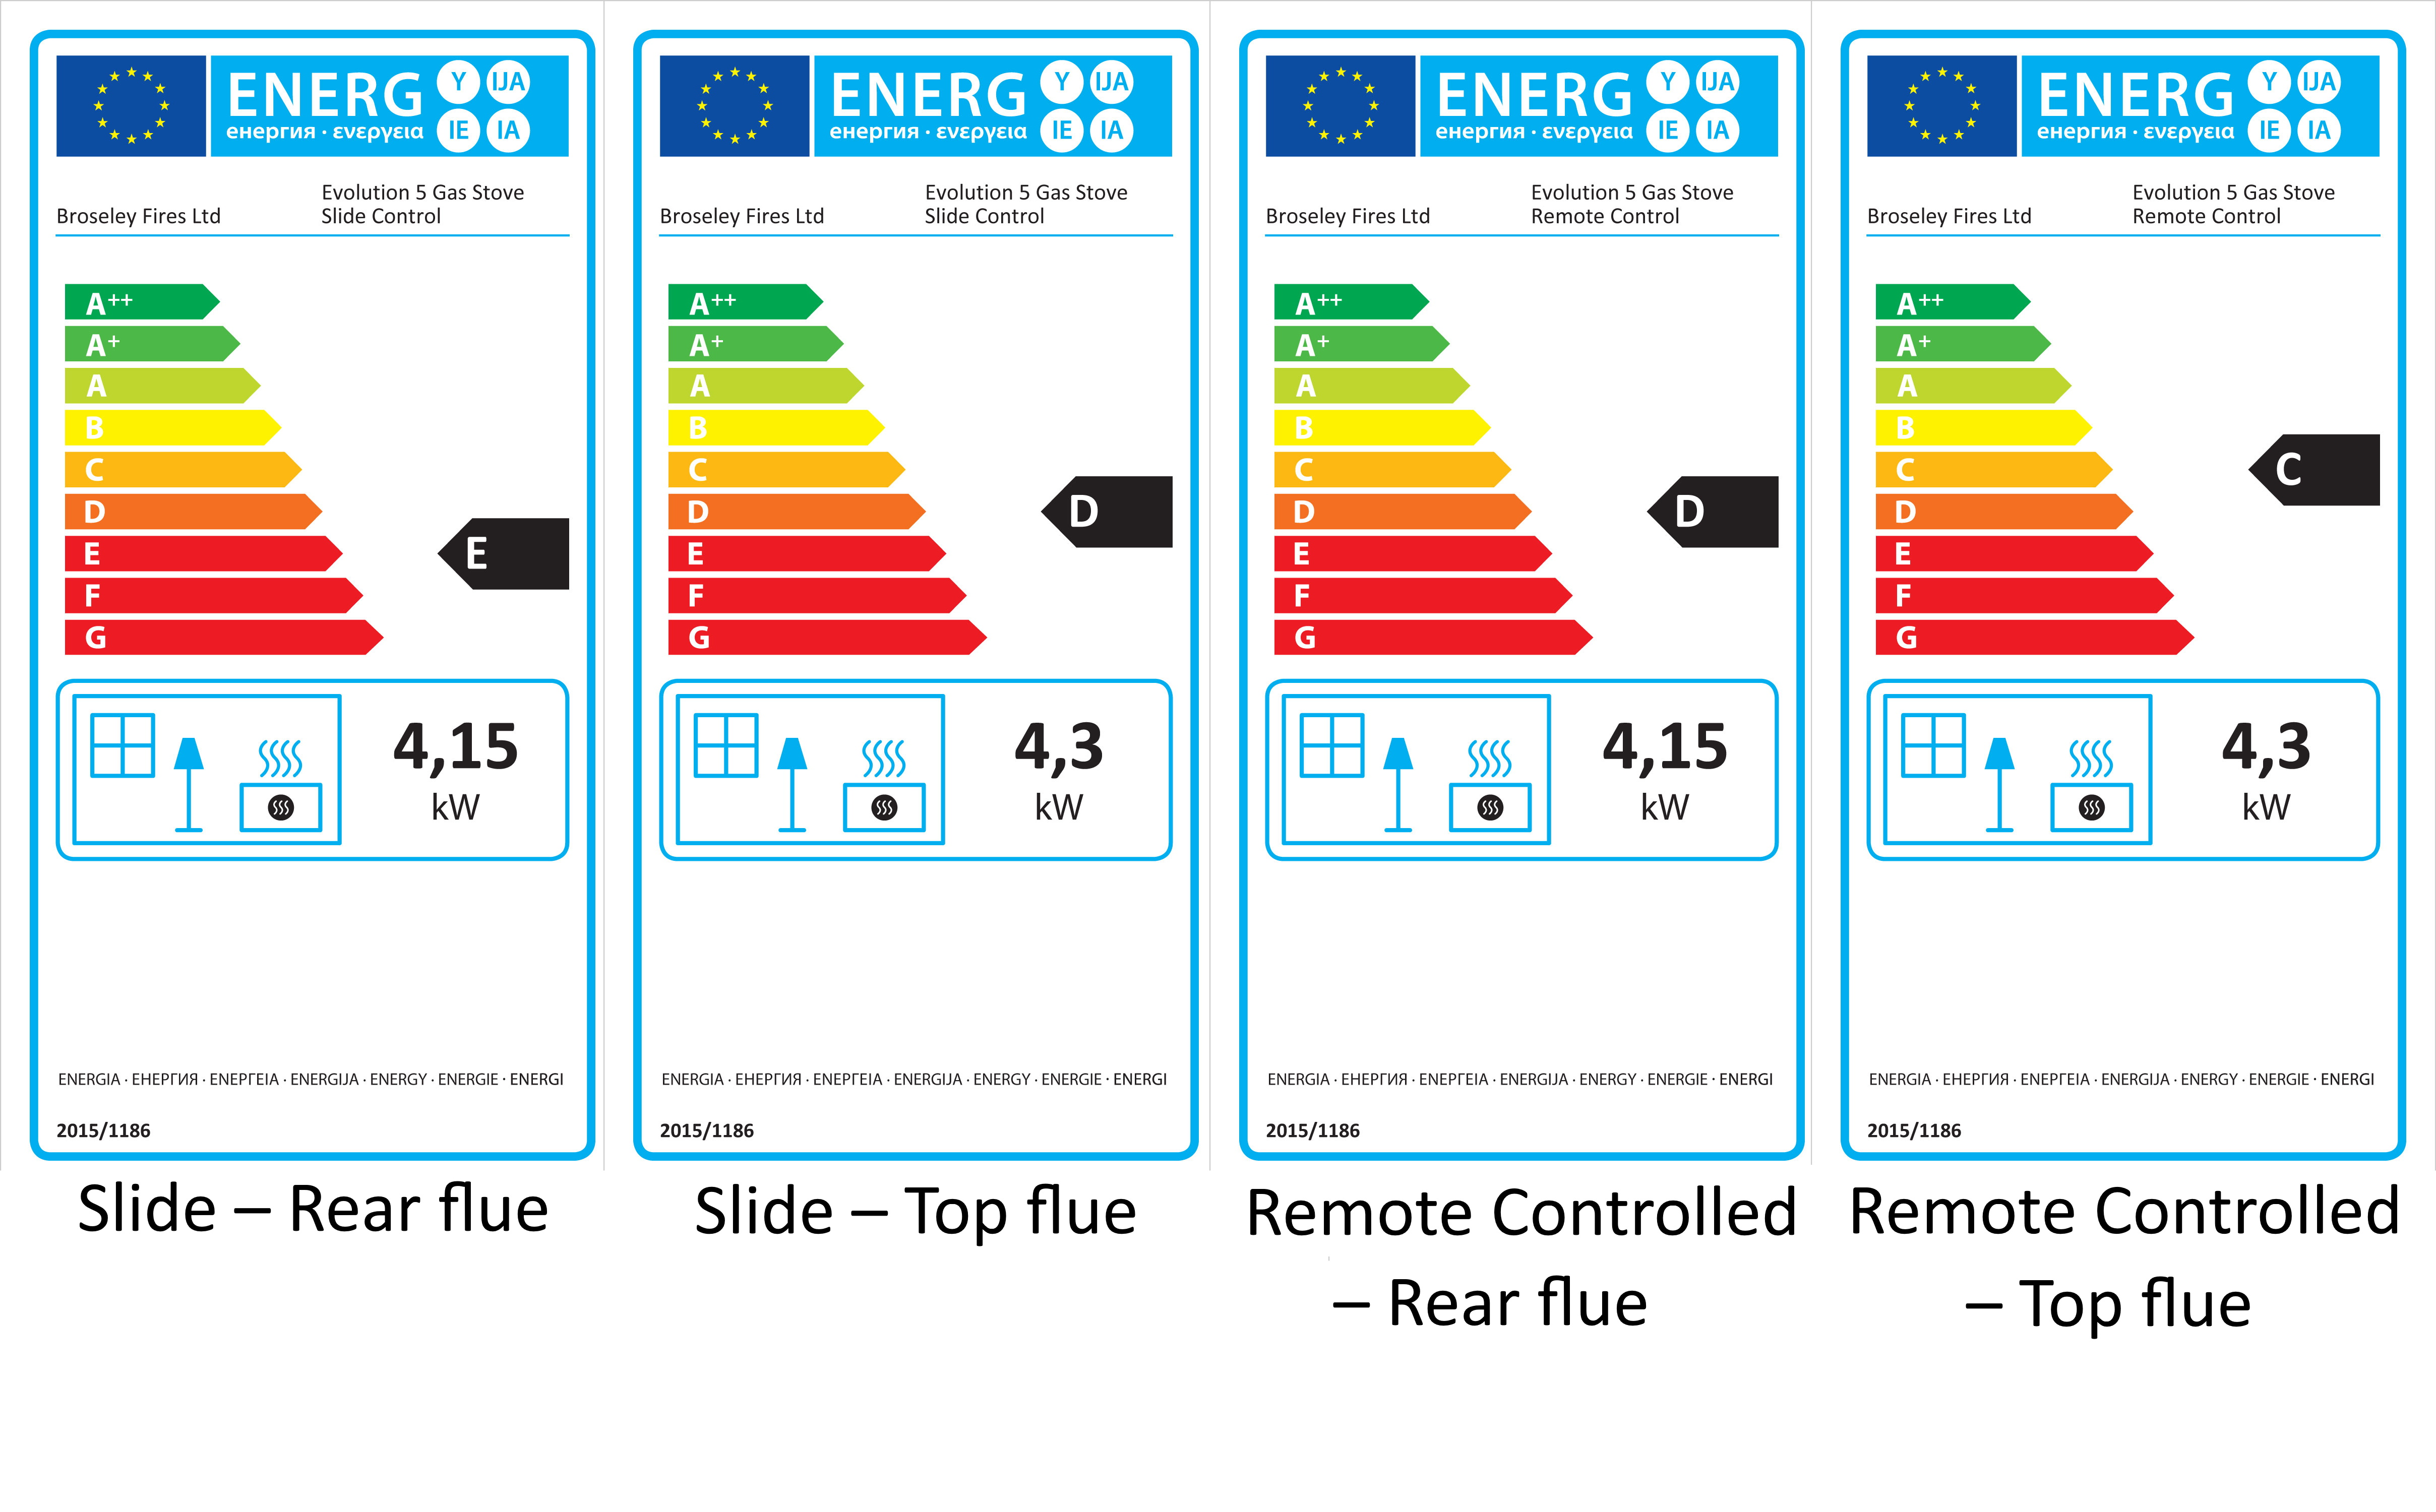 Broseley Evolution 5 gas stove energy ratings